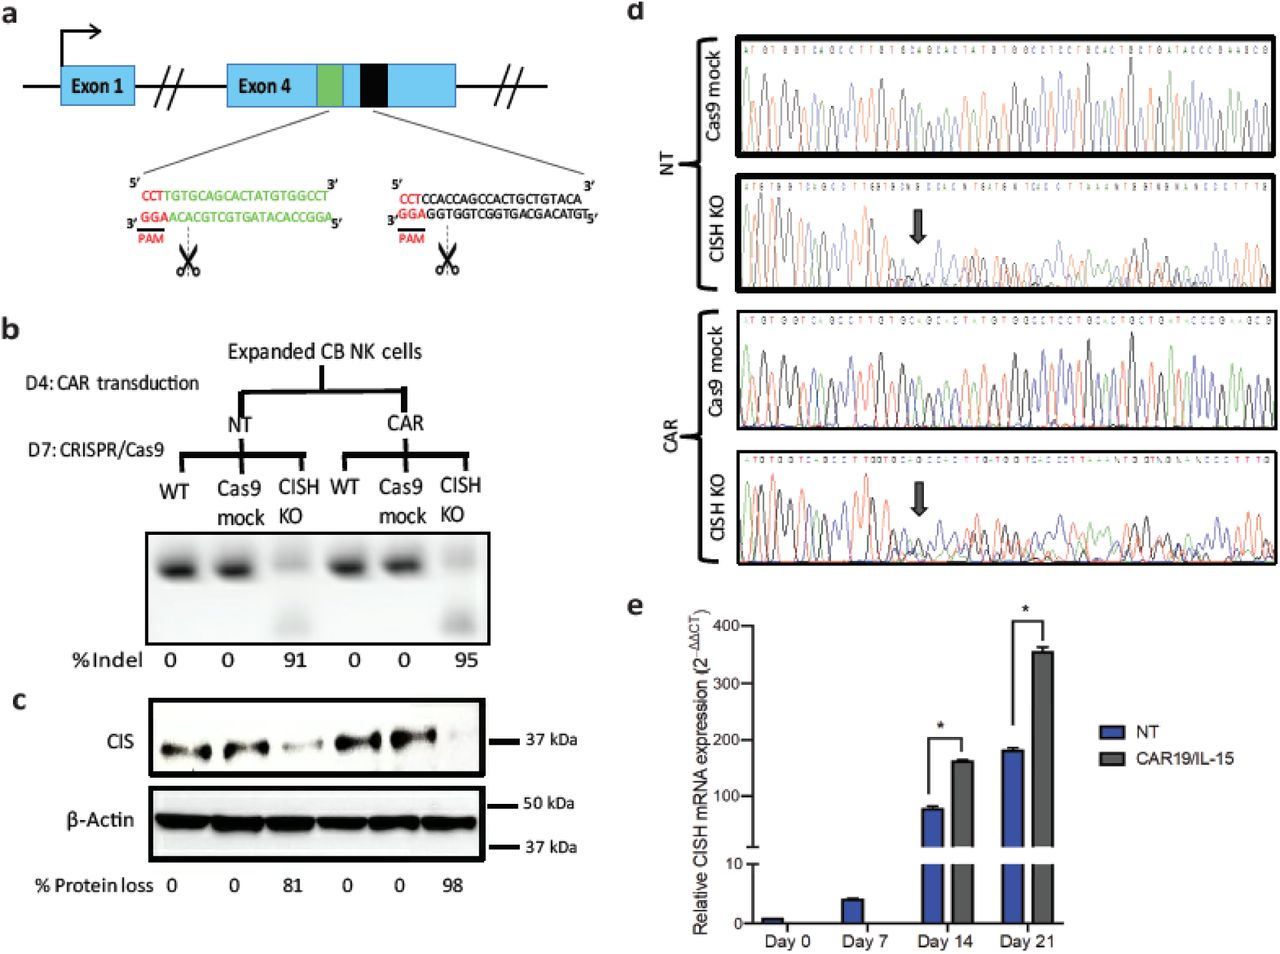 CRISPR/Cas9-mediated deletion of CISH in iC9/CAR19/IL-15 NK cells. a , Schematic representation of CRISPR/Cas9-mediated CISH KO using two guide RNAs (gRNA) targeting exon 4 of the CISH gene. b,c, CB-NK cells were expanded with K562 based feeder cells and IL-2, then either left non-transduced (NT) or transduced with a retroviral vector expressing iC9/CAR19/IL-15 construct on day 4 of expansion. On day 7 of expansion, NT and iC9/CAR19/IL-15-expressing CB-NK cells were nucleofected with Cas9 alone (Cas9 mock), Cas9 preloaded with gRNA targeting CISH exon 4 ( CISH KO) or non-nucleofected (WT). The CISH KO efficiency was determined by PCR ( b ) and western blot analysis ( c ). d , Sanger sequencing results showing multiple peaks reflecting non-homologous end joining (NHEJ) events in NT or iC9/CAR19/IL-15 (CAR) NK cells that underwent CISH KO compared to single peaks in CTRL (Cas9 mock). Arrows indicate the base pair position where the gene editing started. e , Bar graphs showing the relative mRNA expression levels of CISH determined on days 0, 7, 14 and 21 of expansion in NT (blue) and iC9/CAR19/IL-15 transduced (grey) NK cells by reverse transcription polymerase chain reaction (RT-PCR) (n=3). Note that on days 0 and 7 only data for NT-NK cells are included since the CAR transduction step is performed on day 4 of expansion.18 S ribosomal <t>RNA</t> (18S) was used as the internal reference gene. Bars represent mean values with standard deviation, *p ≤ 0.05.